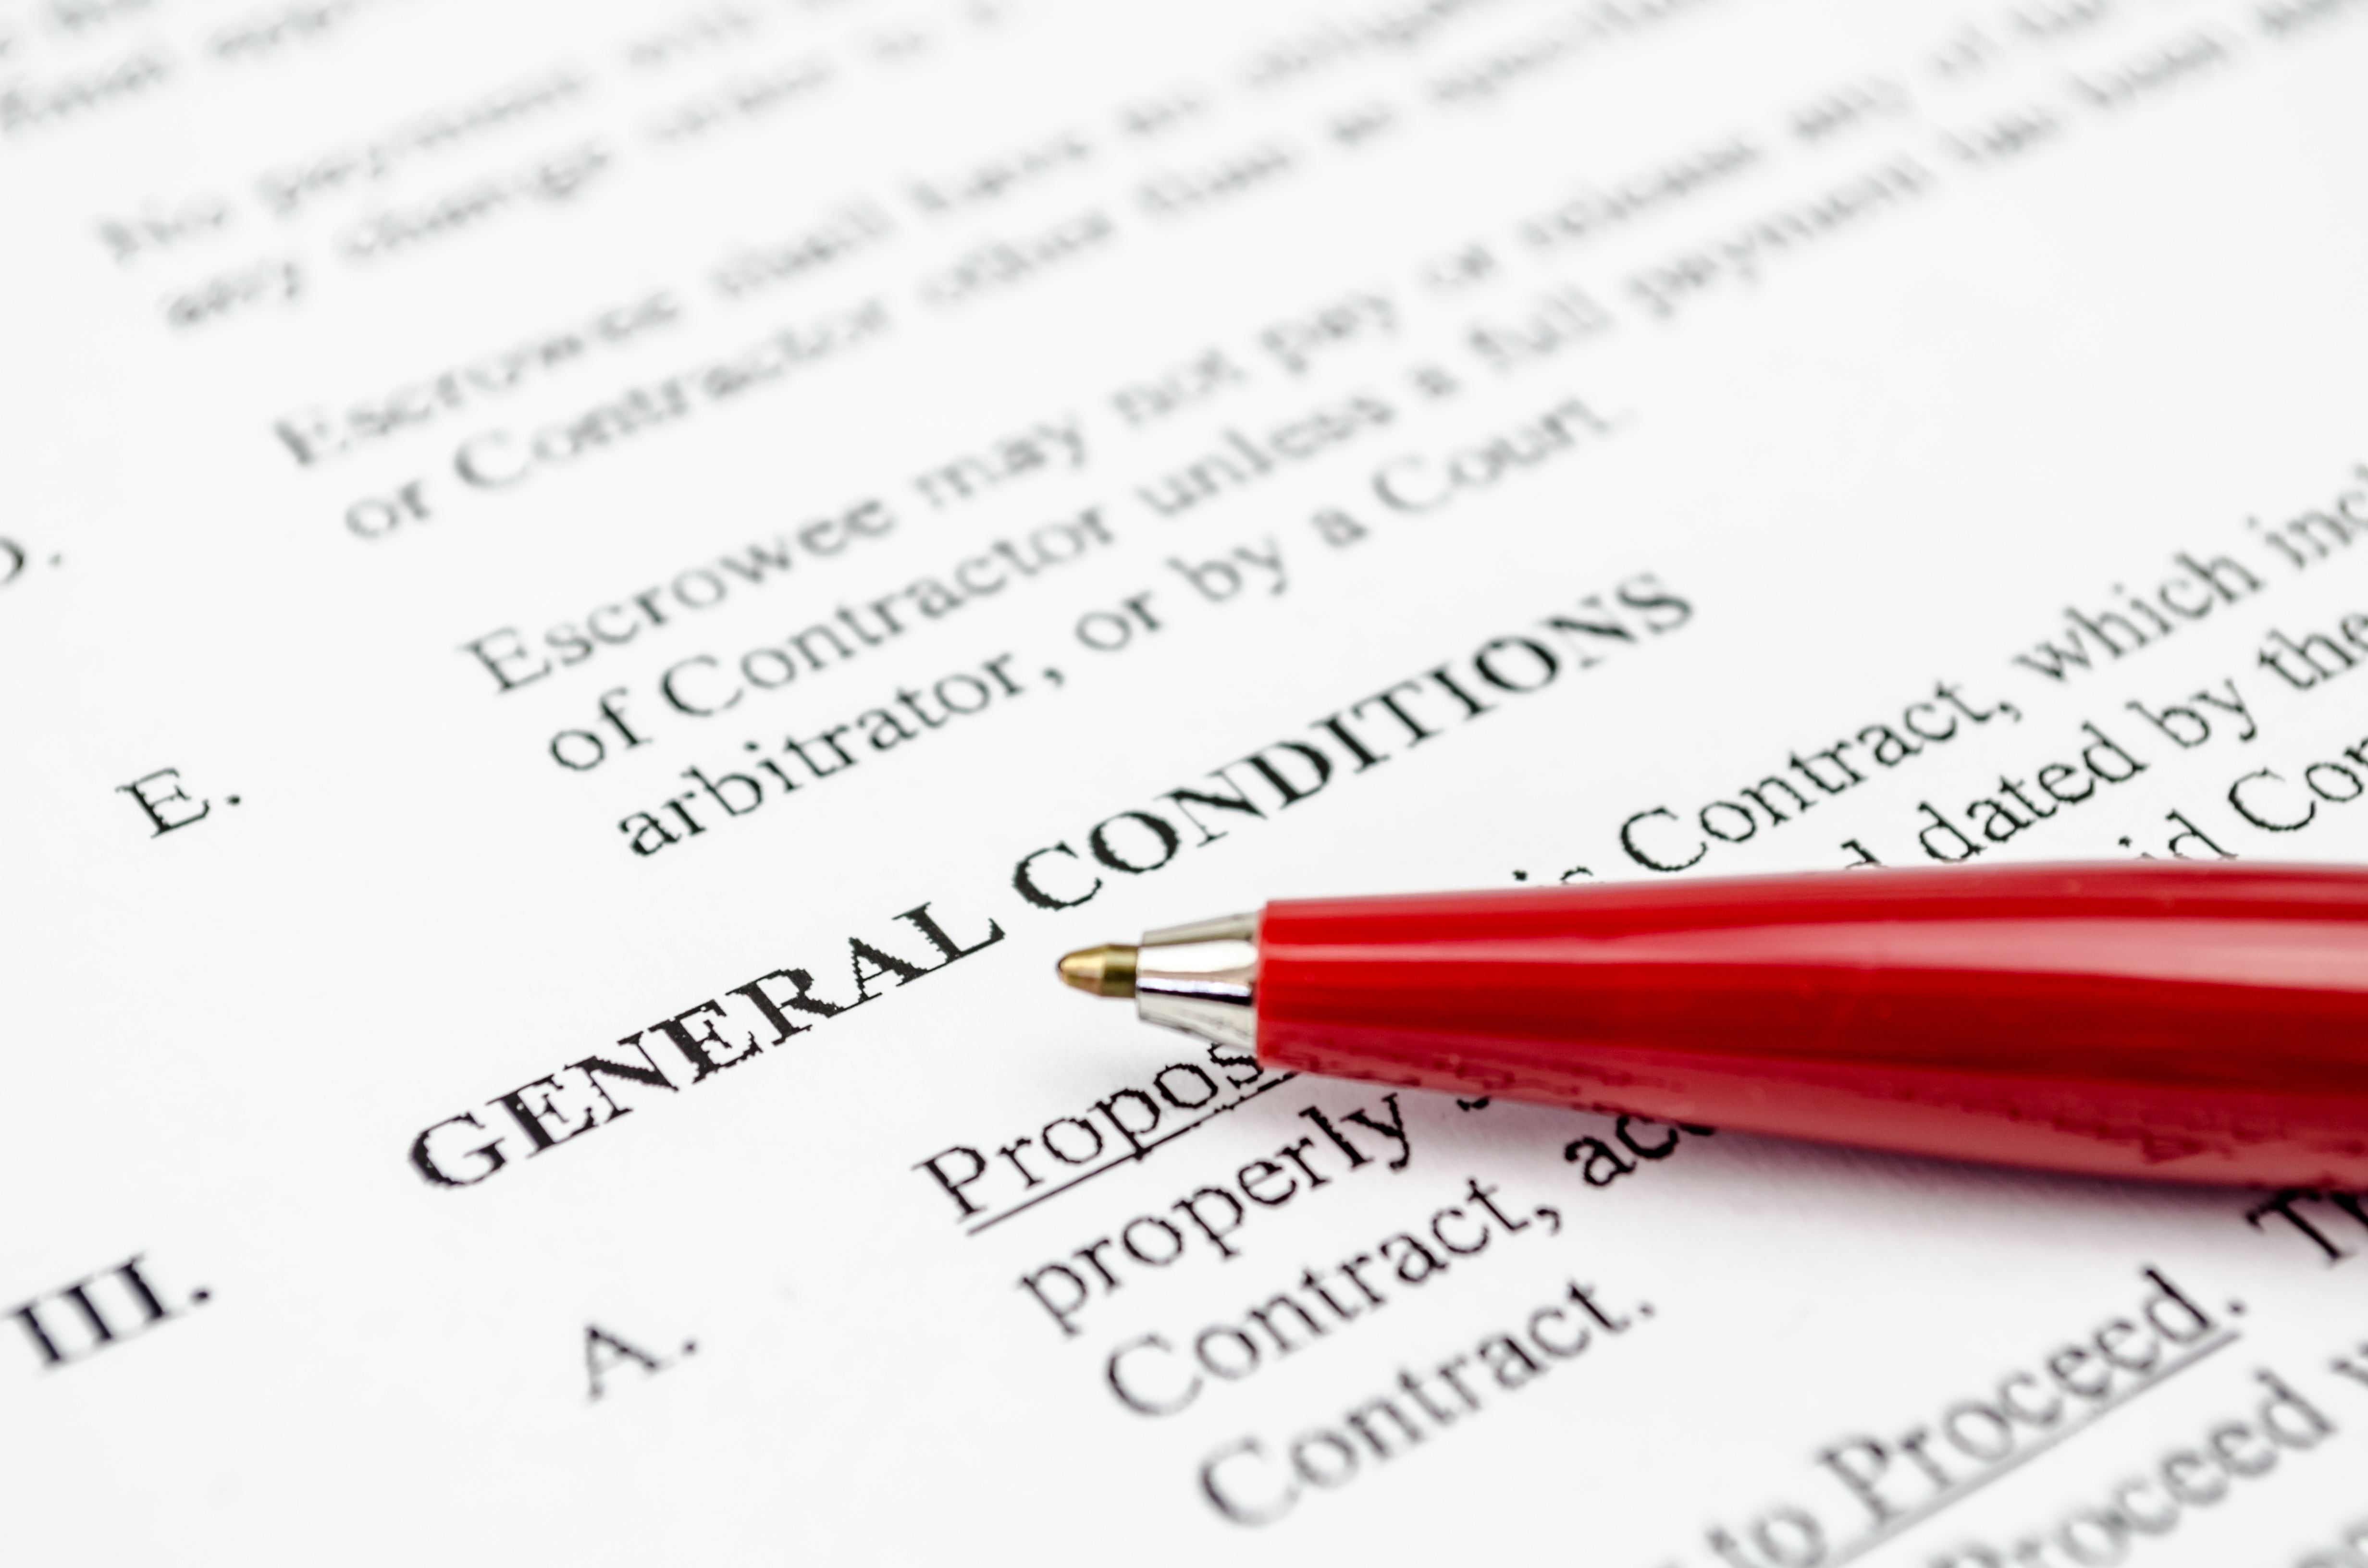 General Terms and Conditions of Carriage